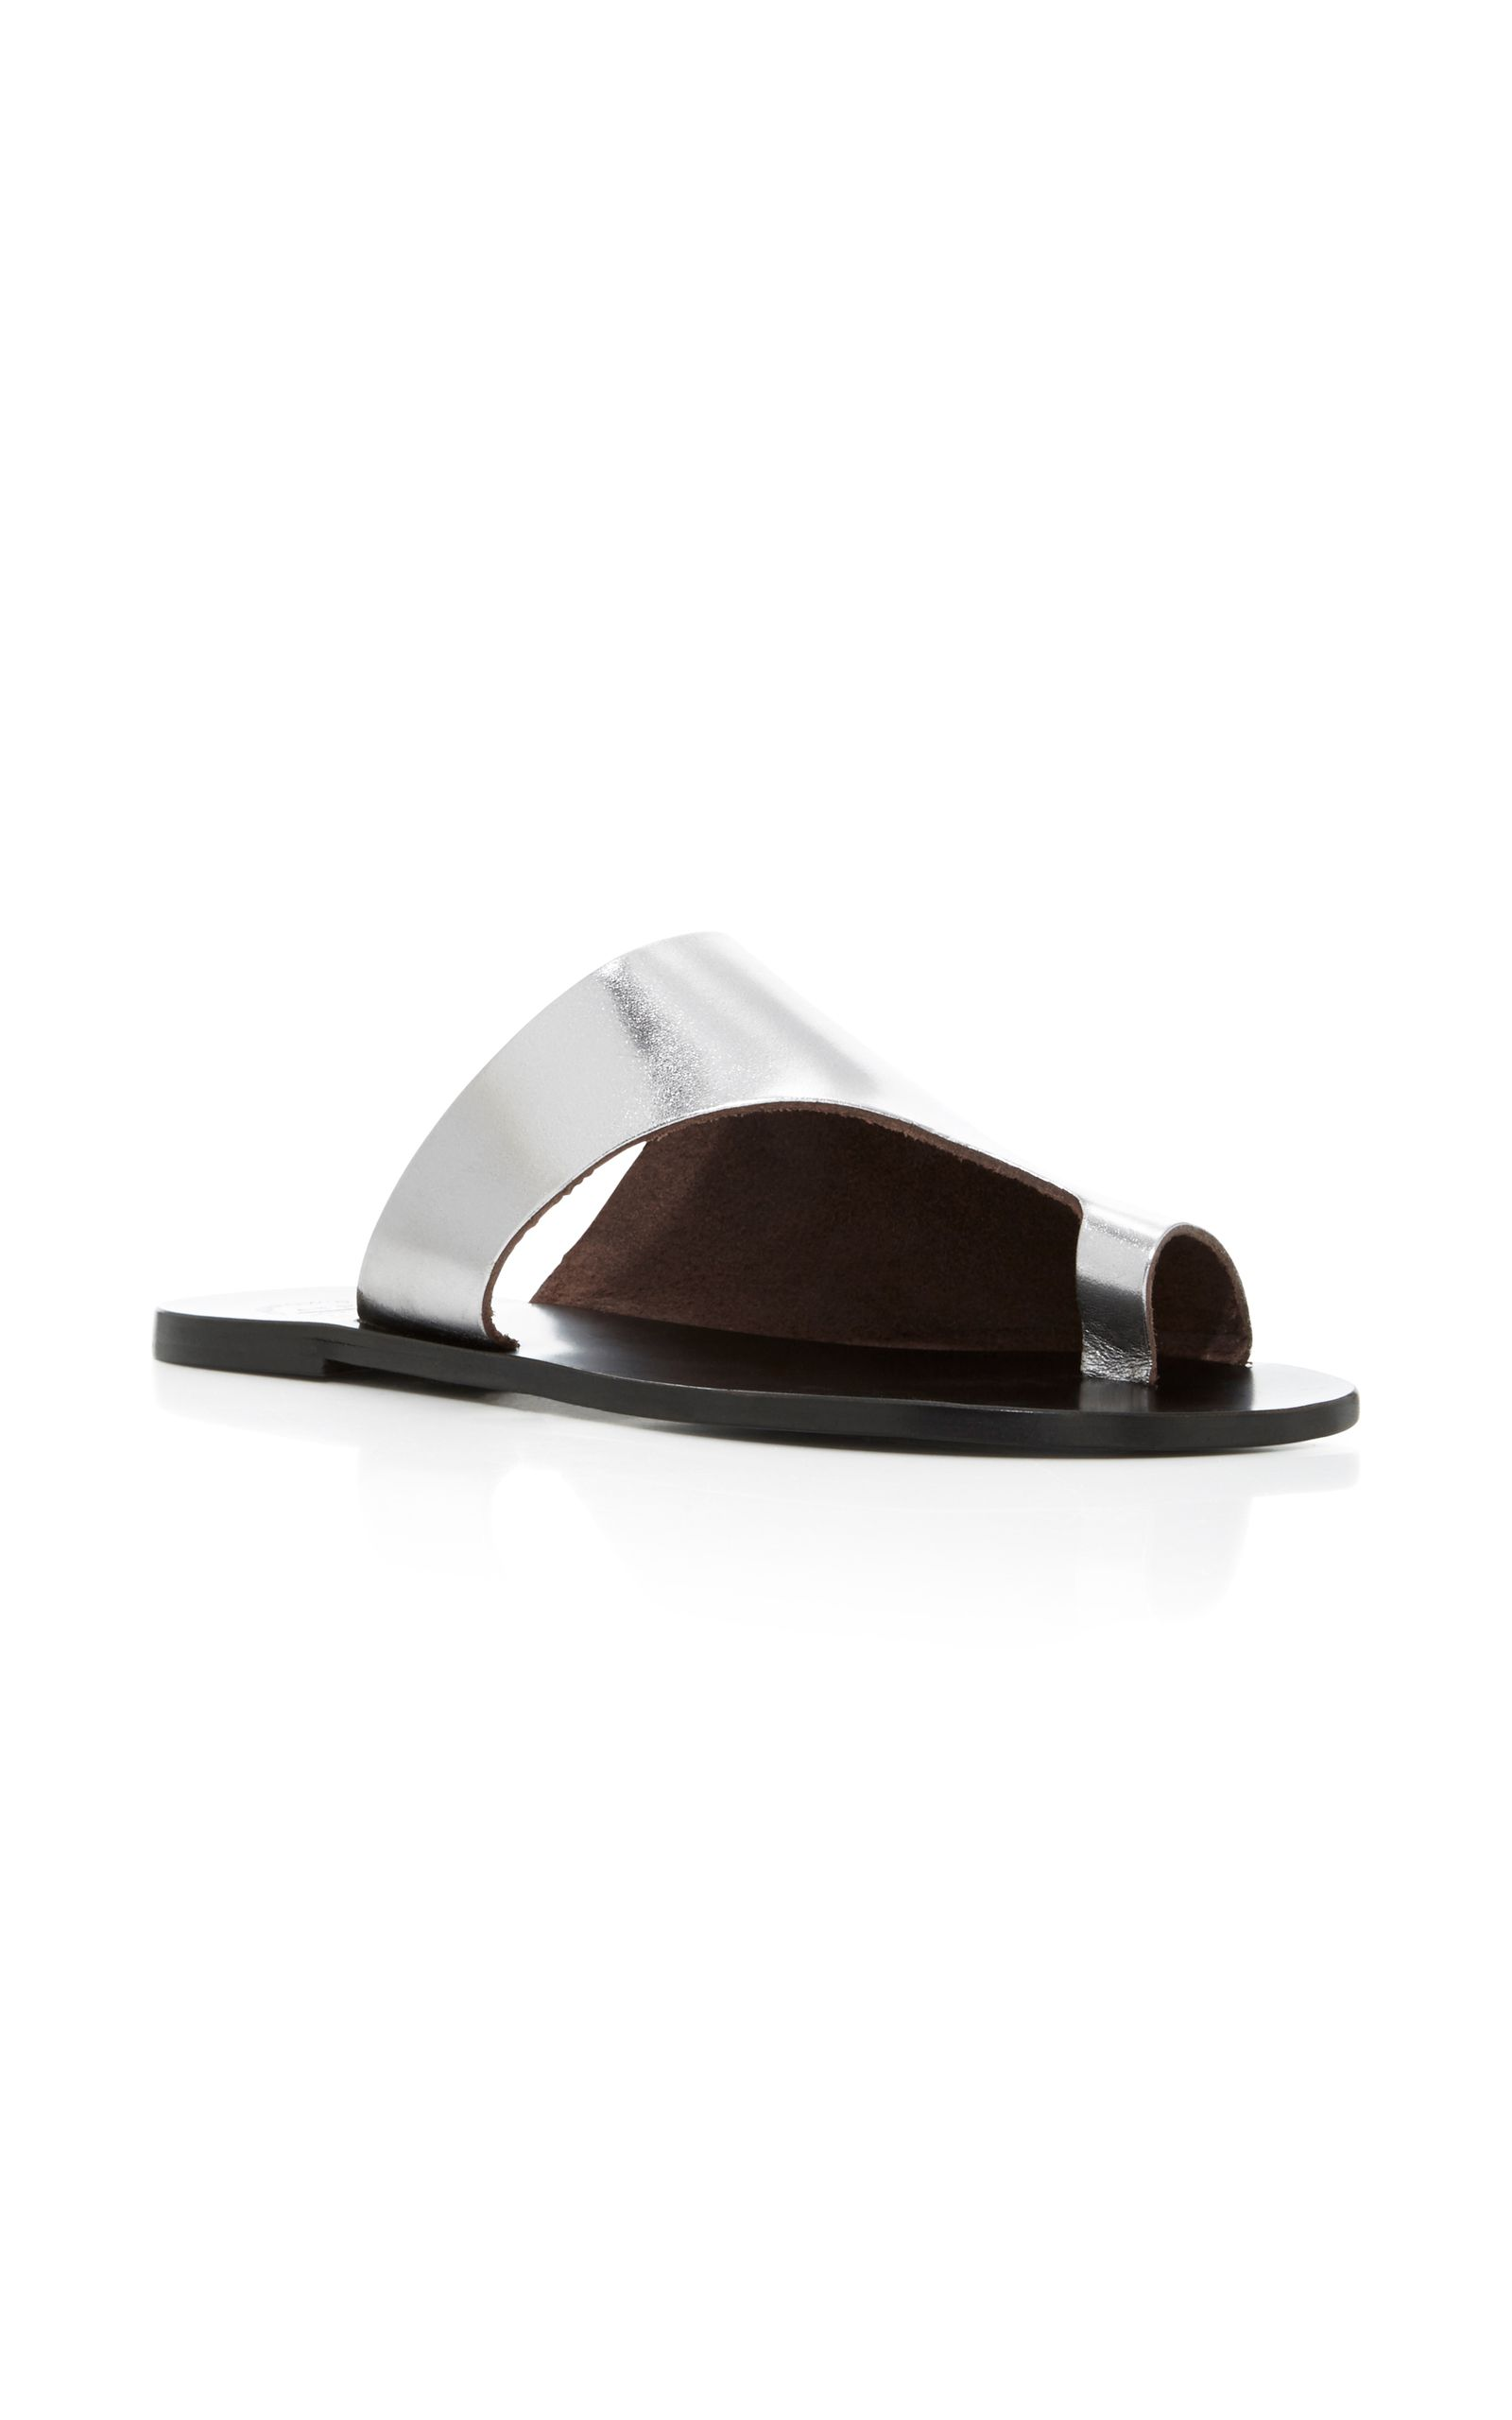 ATP Atelier Leather Crossover Sandals excellent sale online outlet latest supply cheap price many kinds of cheap price outlet online shop M6vc3R